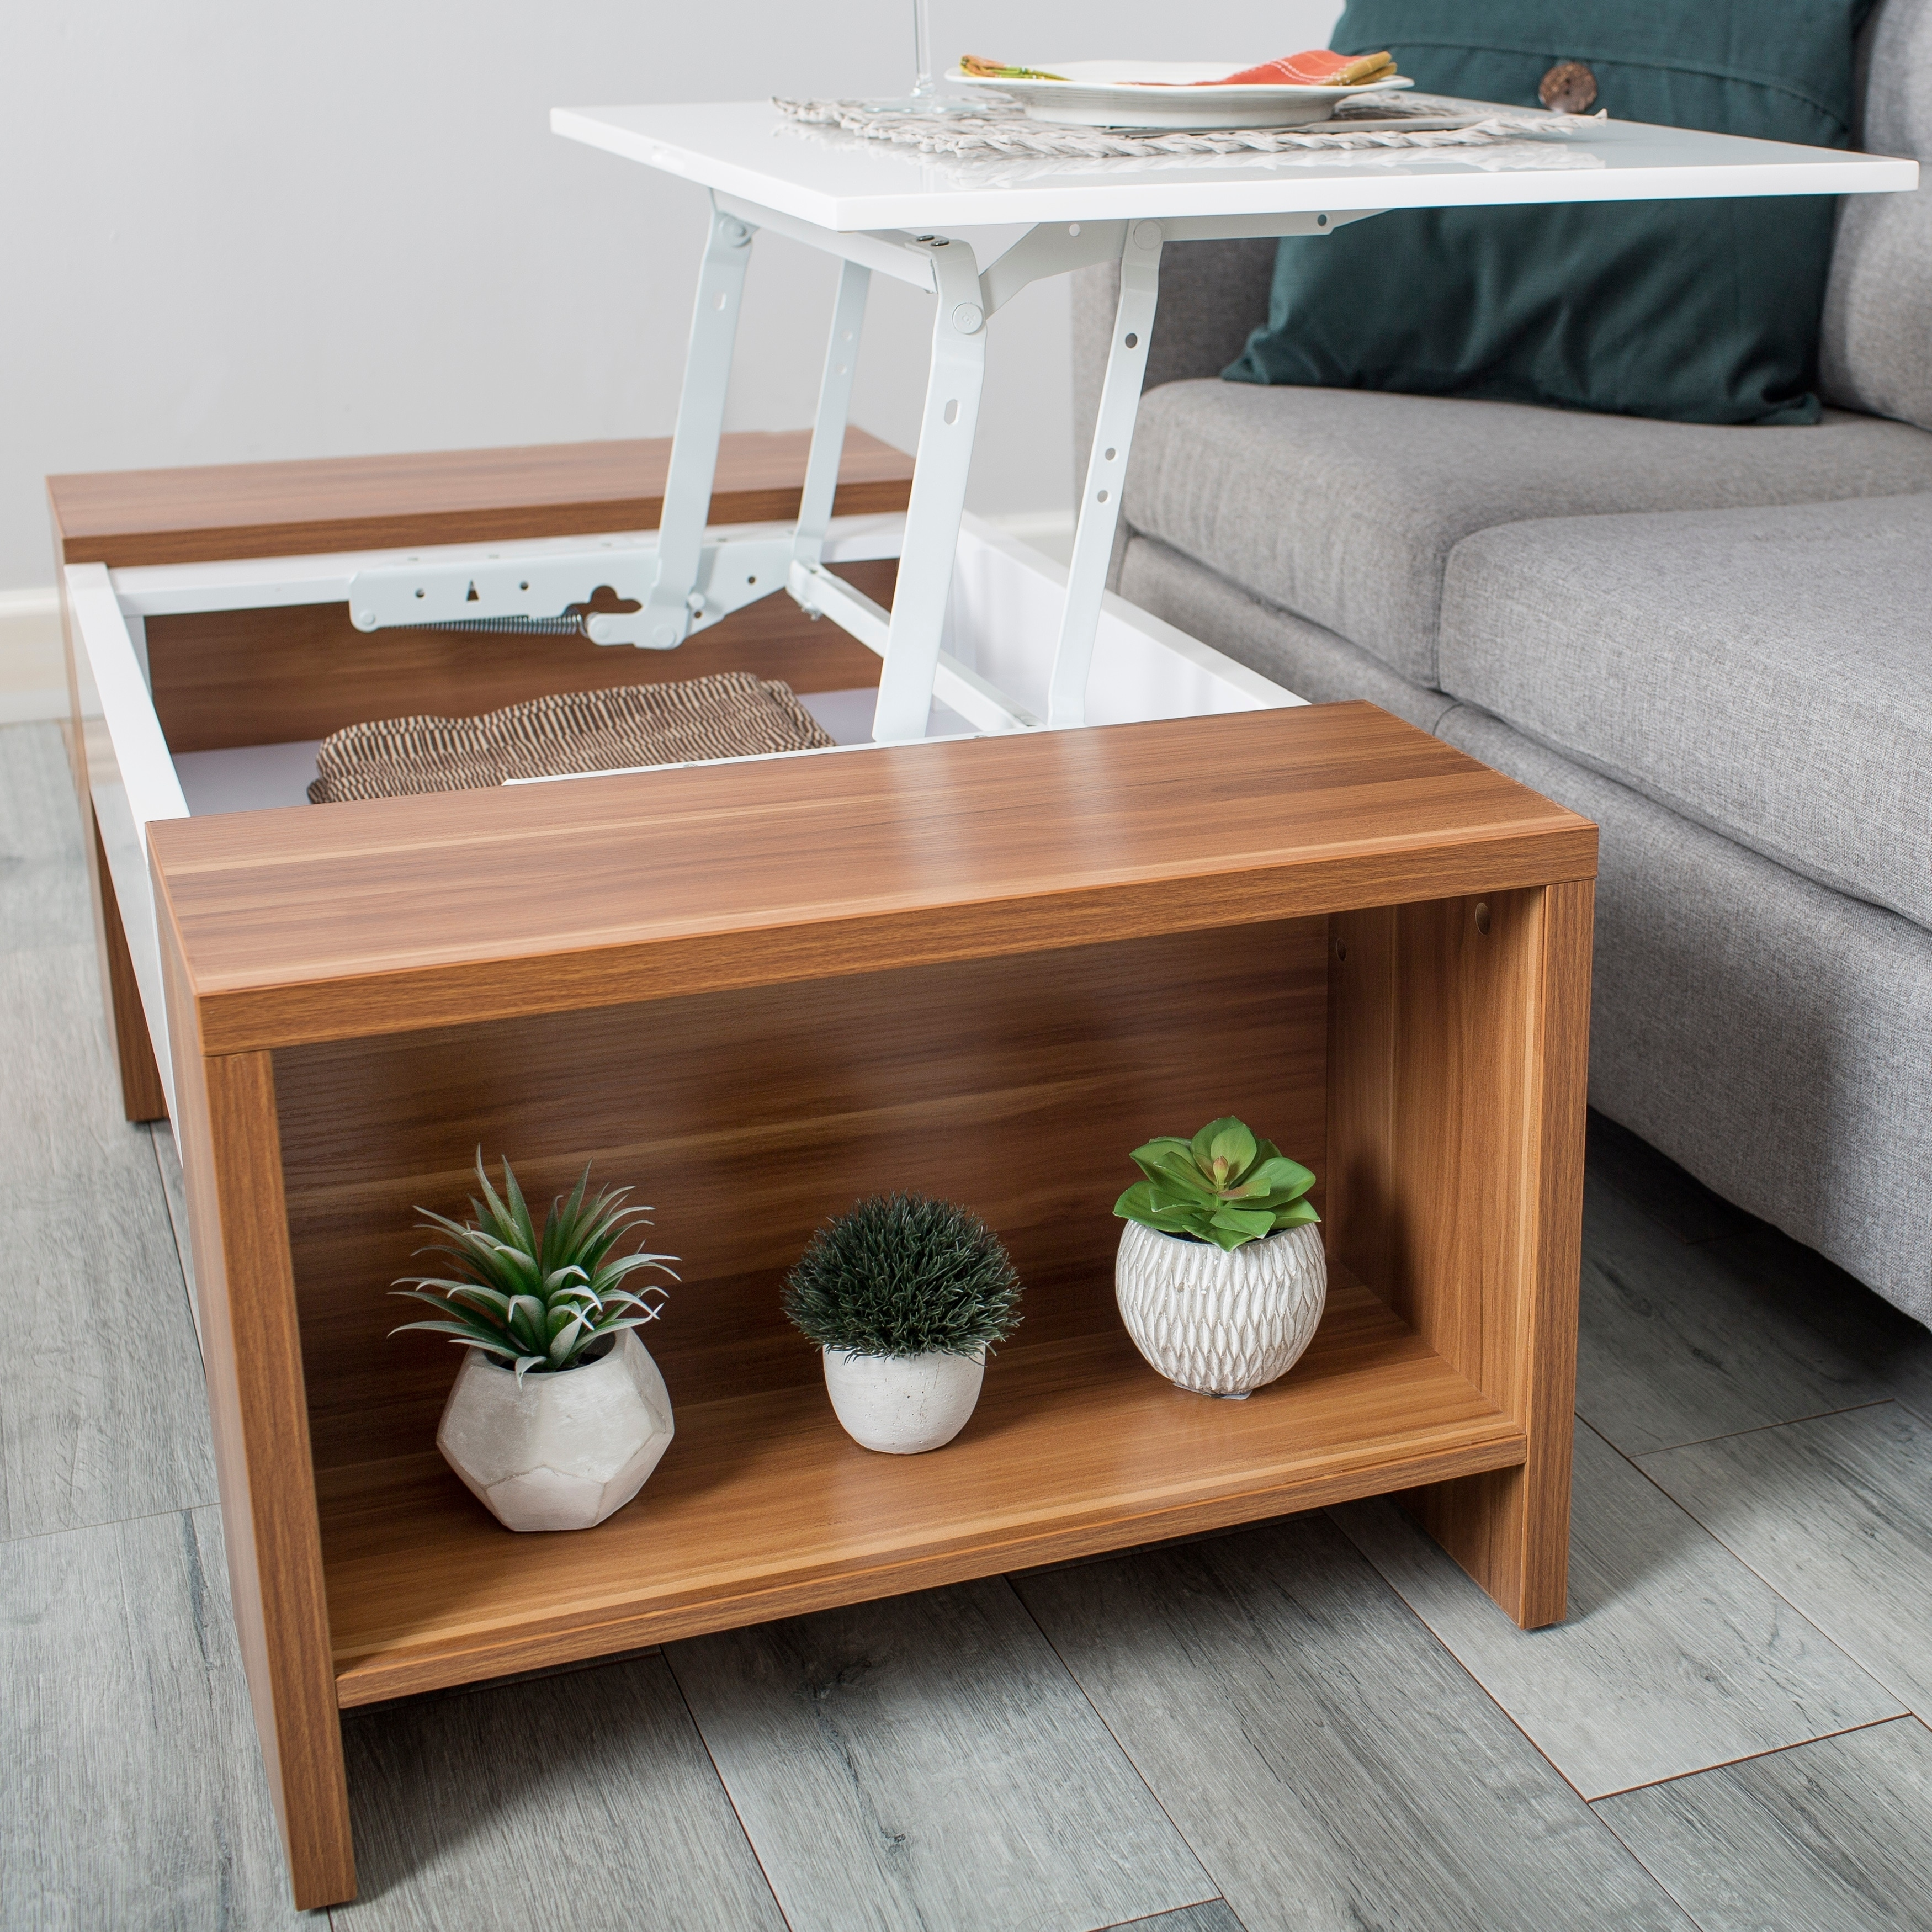 Shop MIX White Lacquer High Gloss Walnut Melamine Veneer Wood Coffee Table    On Sale   Free Shipping Today   Overstock.com   17759744